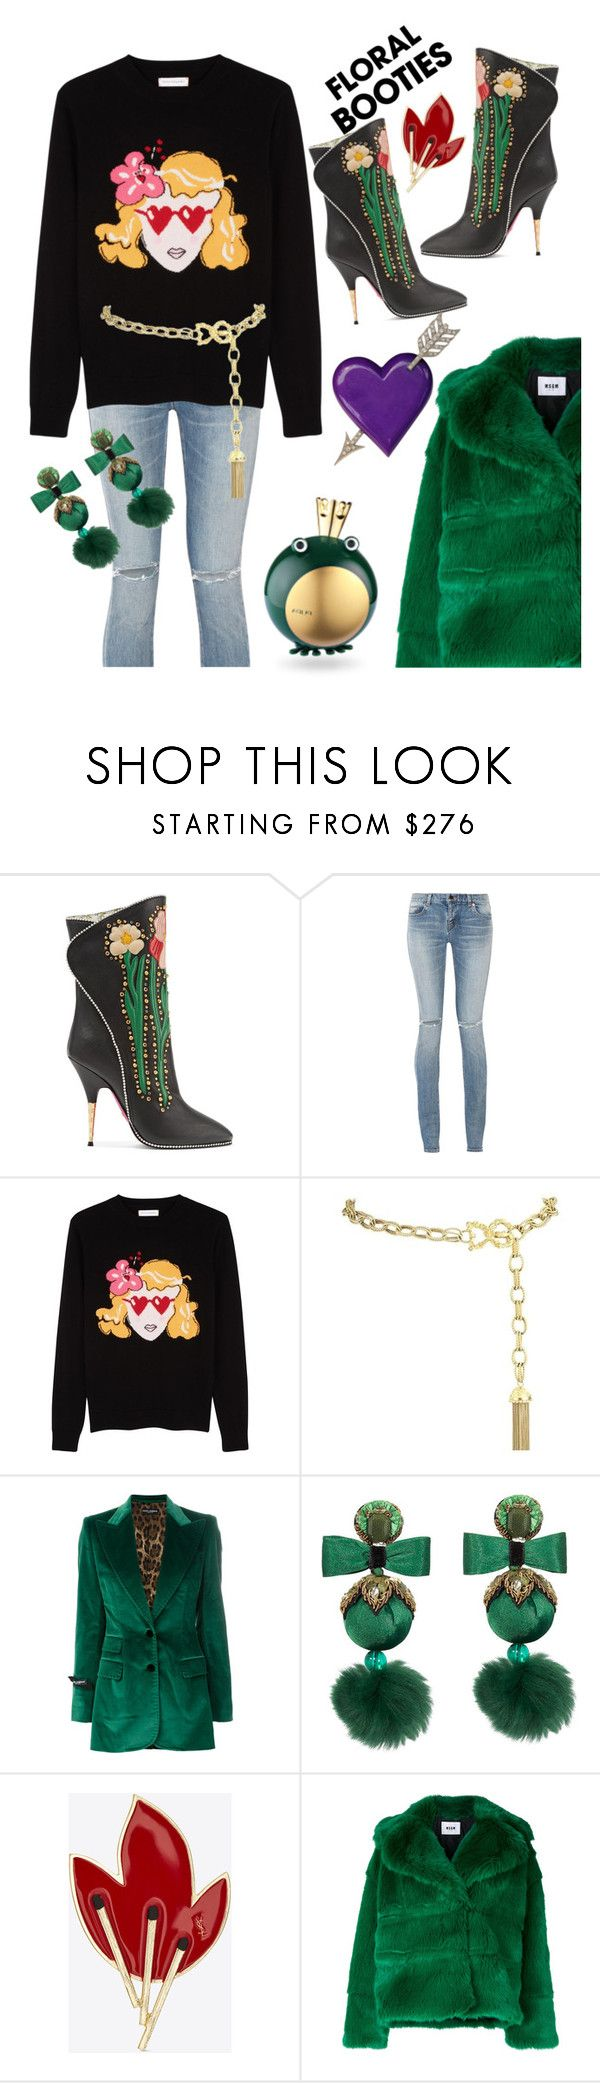 """Glam up your jeans"" by ellenfischerbeauty ❤ liked on Polyvore featuring Gucci, Yves Saint Laurent, Chinti and Parker, Dolce&Gabbana, Ranjana Khan, MSGM, dolceandgabbana, darkflorals and gucciboots"